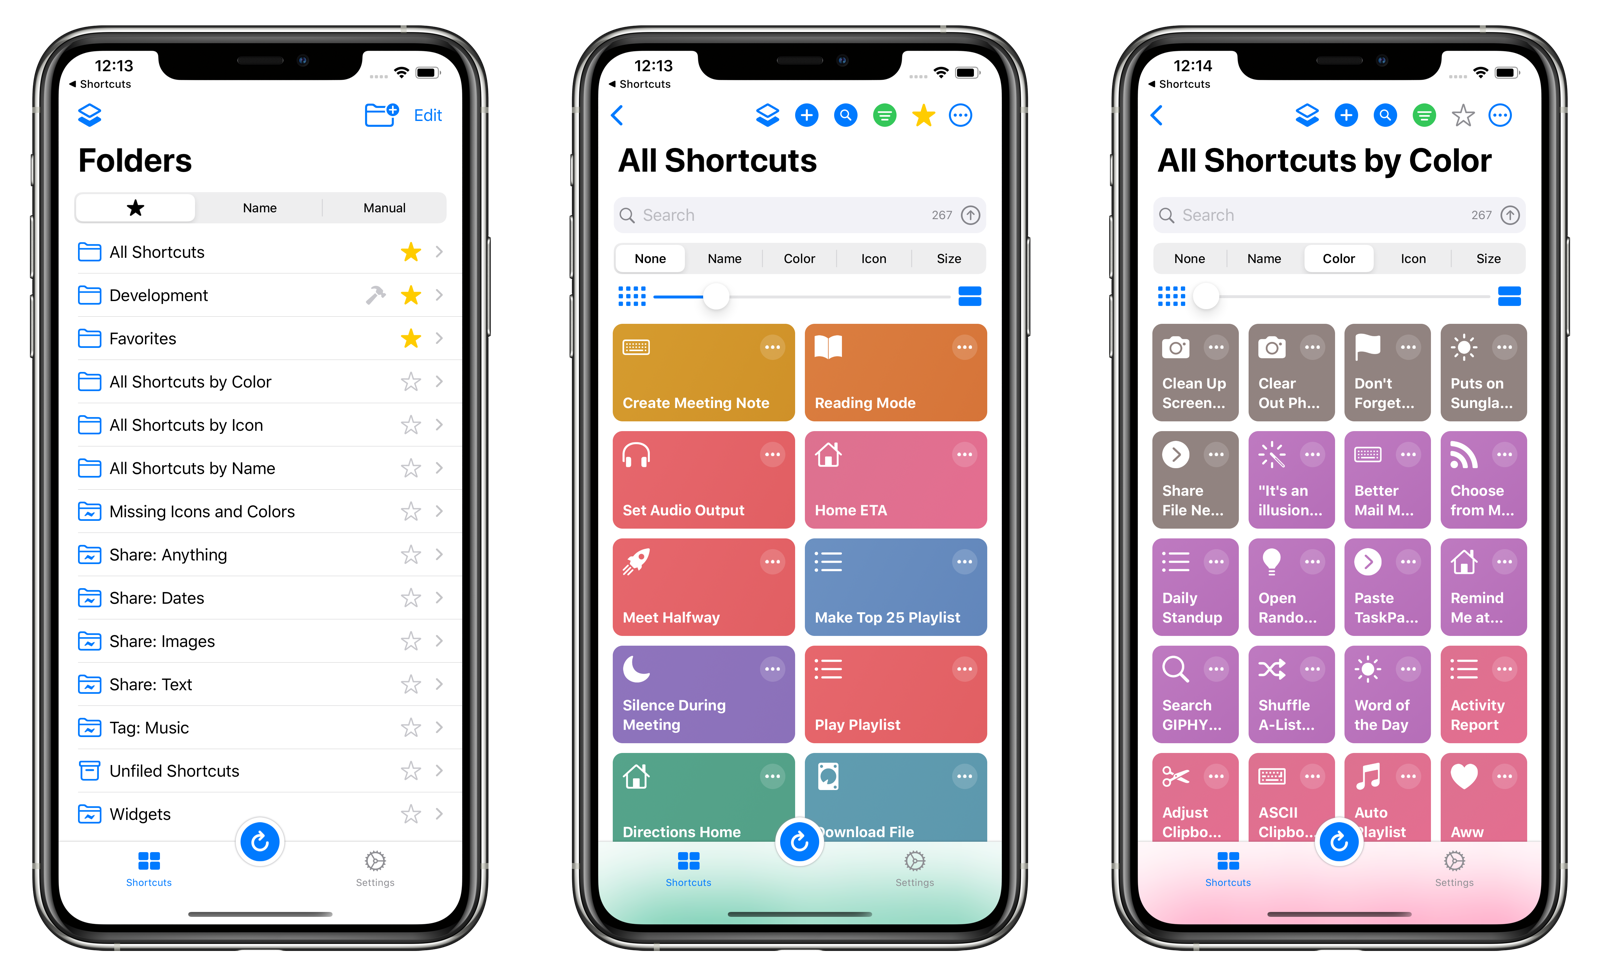 LaunchCuts Home on iOS